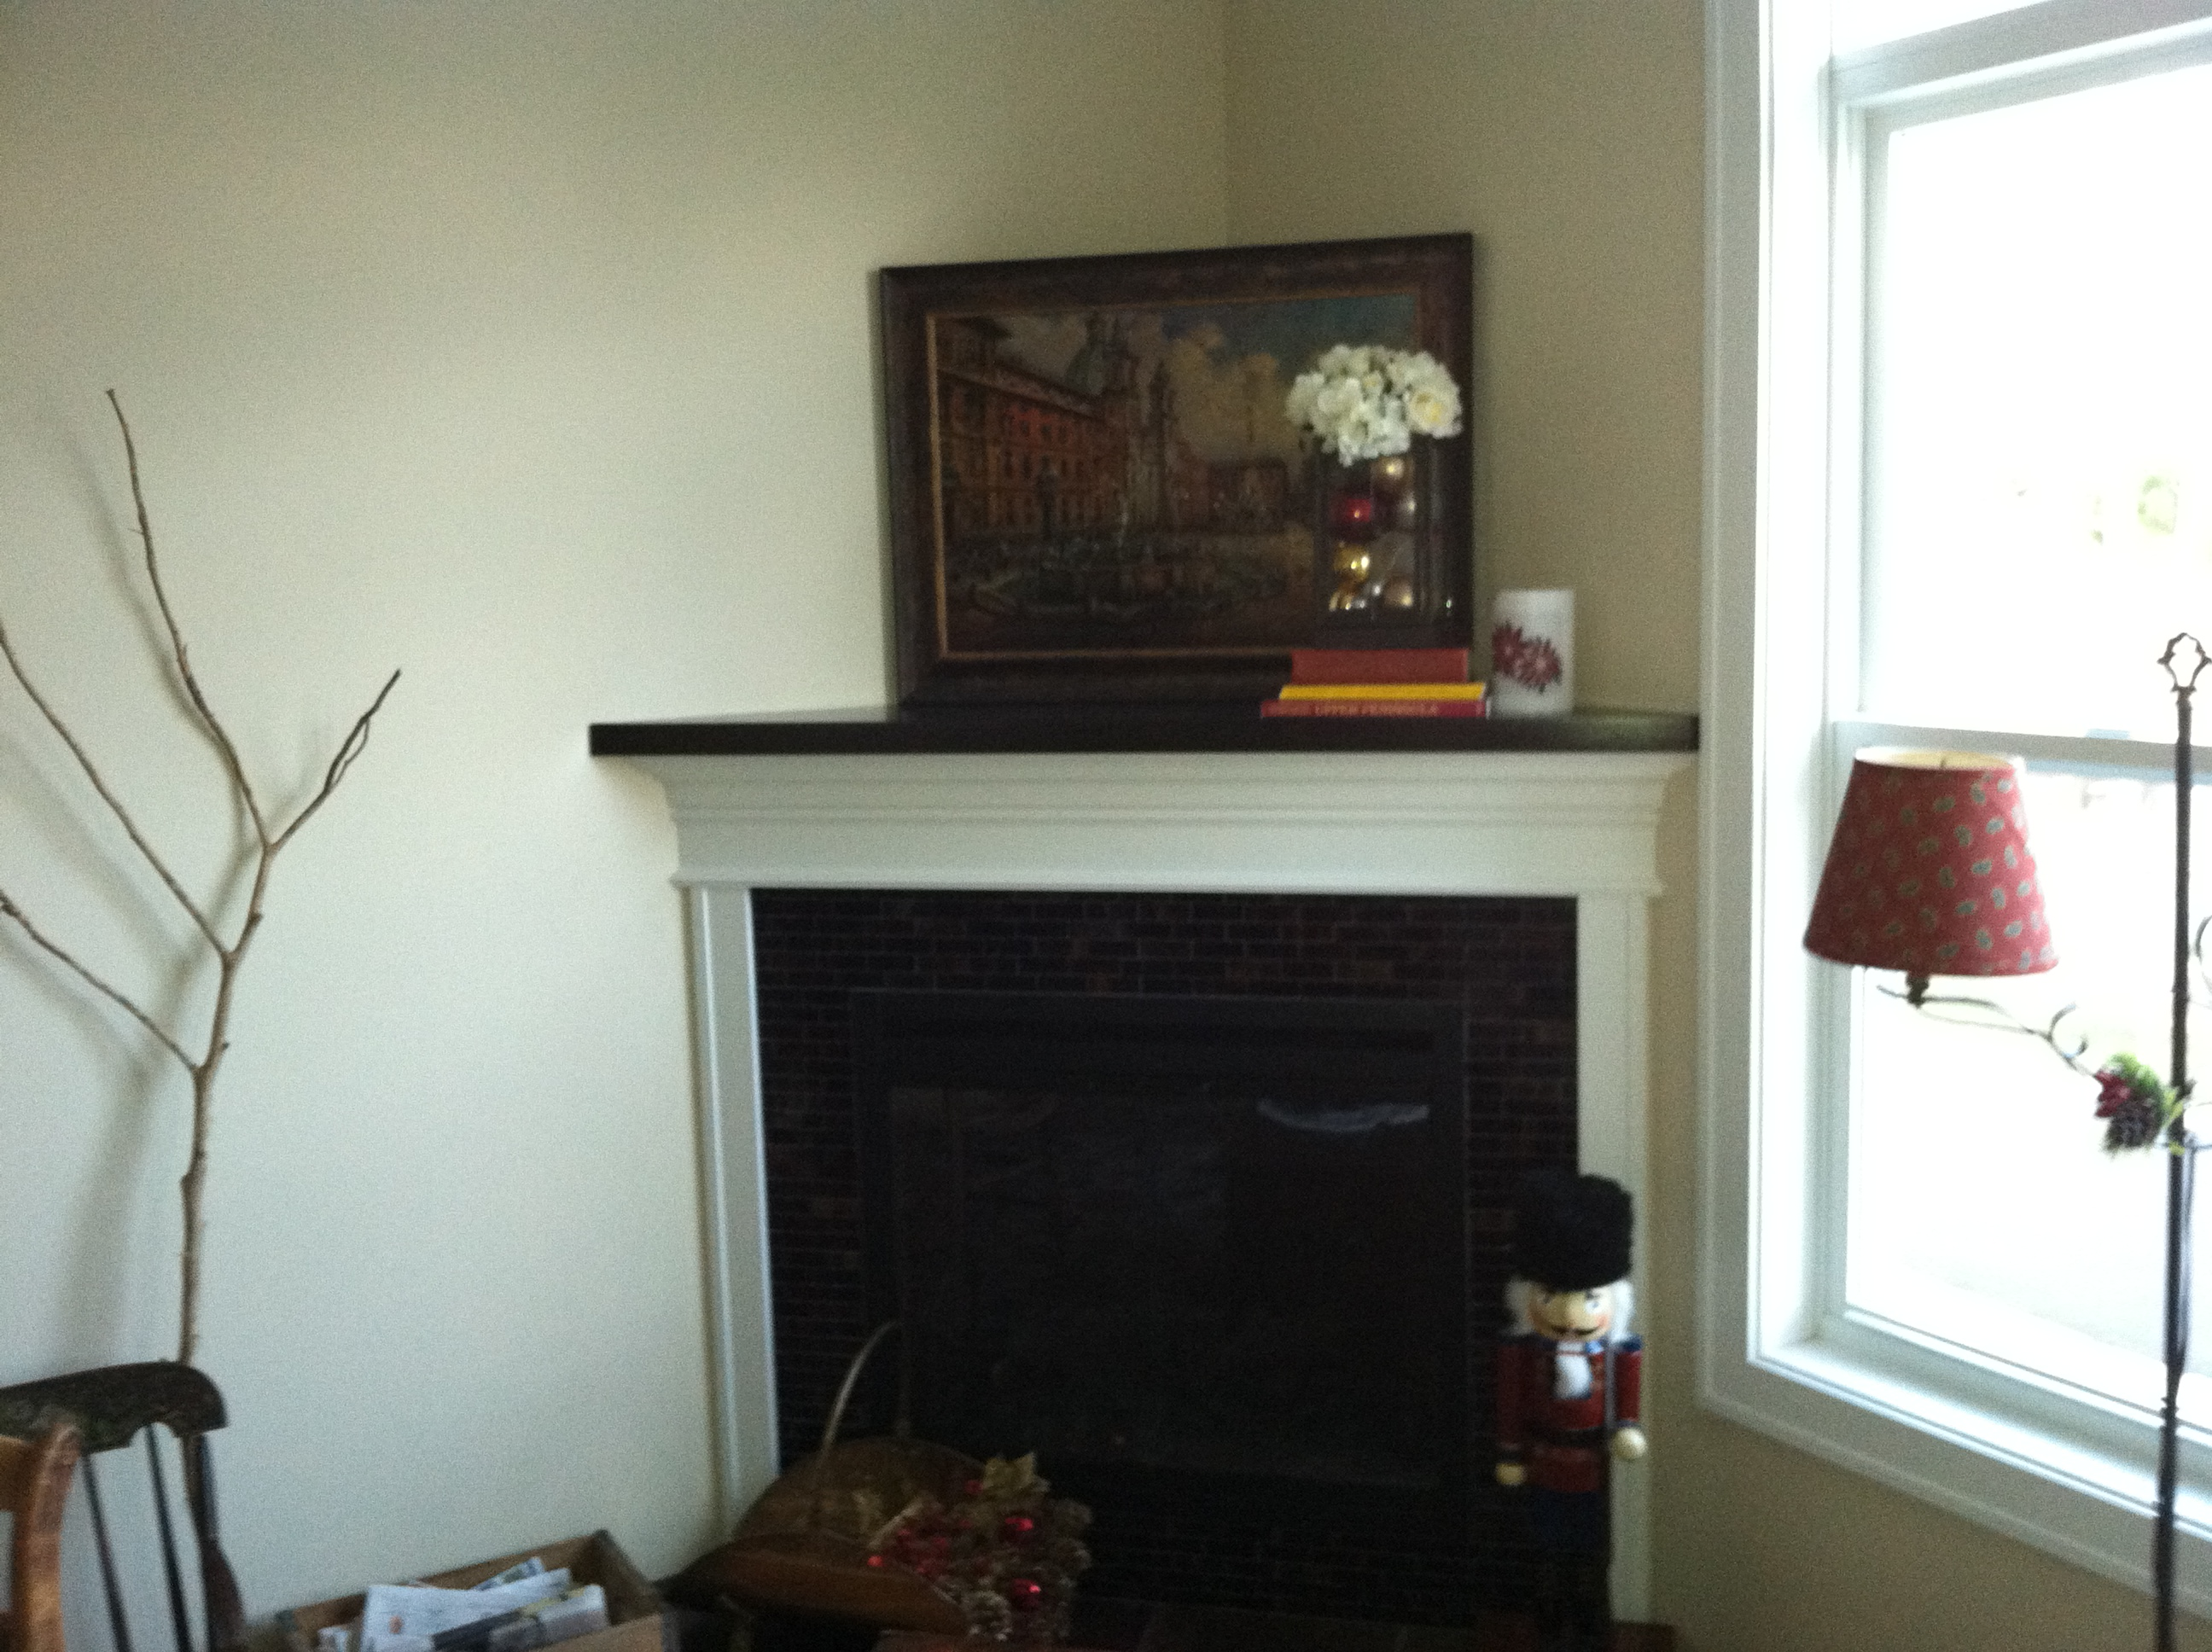 Standard corner gas fireplace.